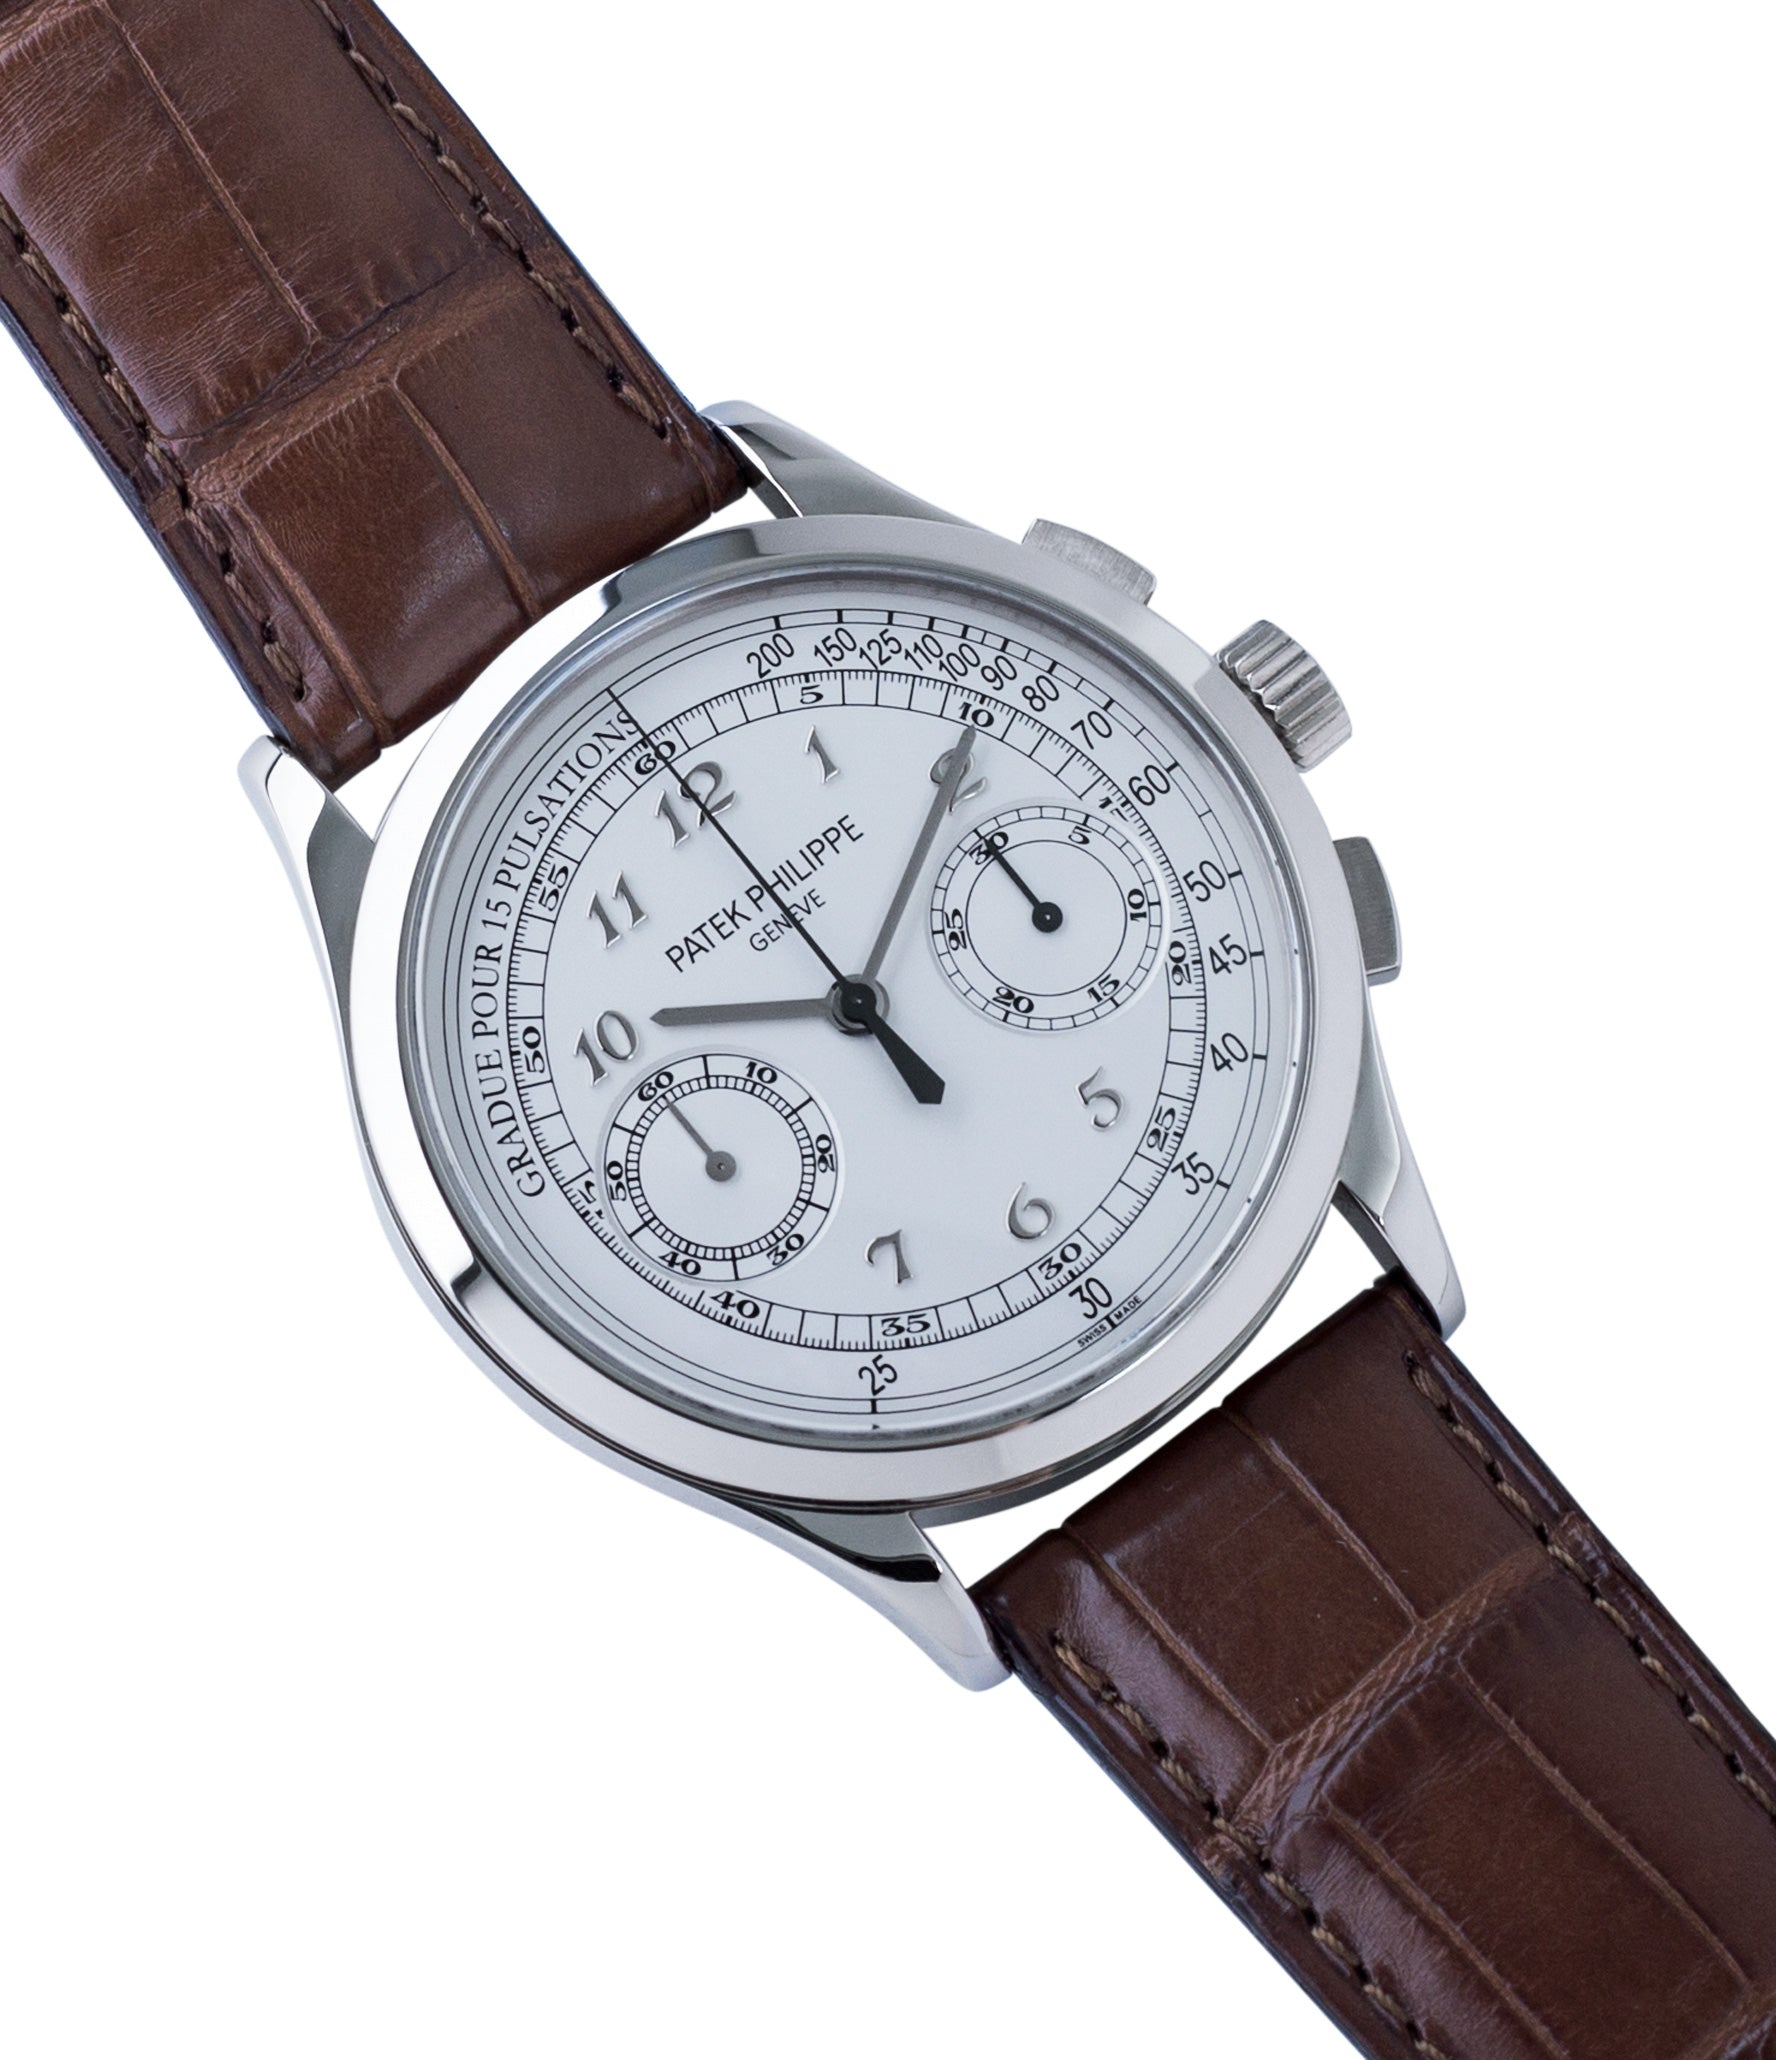 for sale preowned Patek Philippe 5170G-001 grey gold dress Chronograph Pulsation Scale watch at A Collected Man London rare watch specialist in United Kingdom